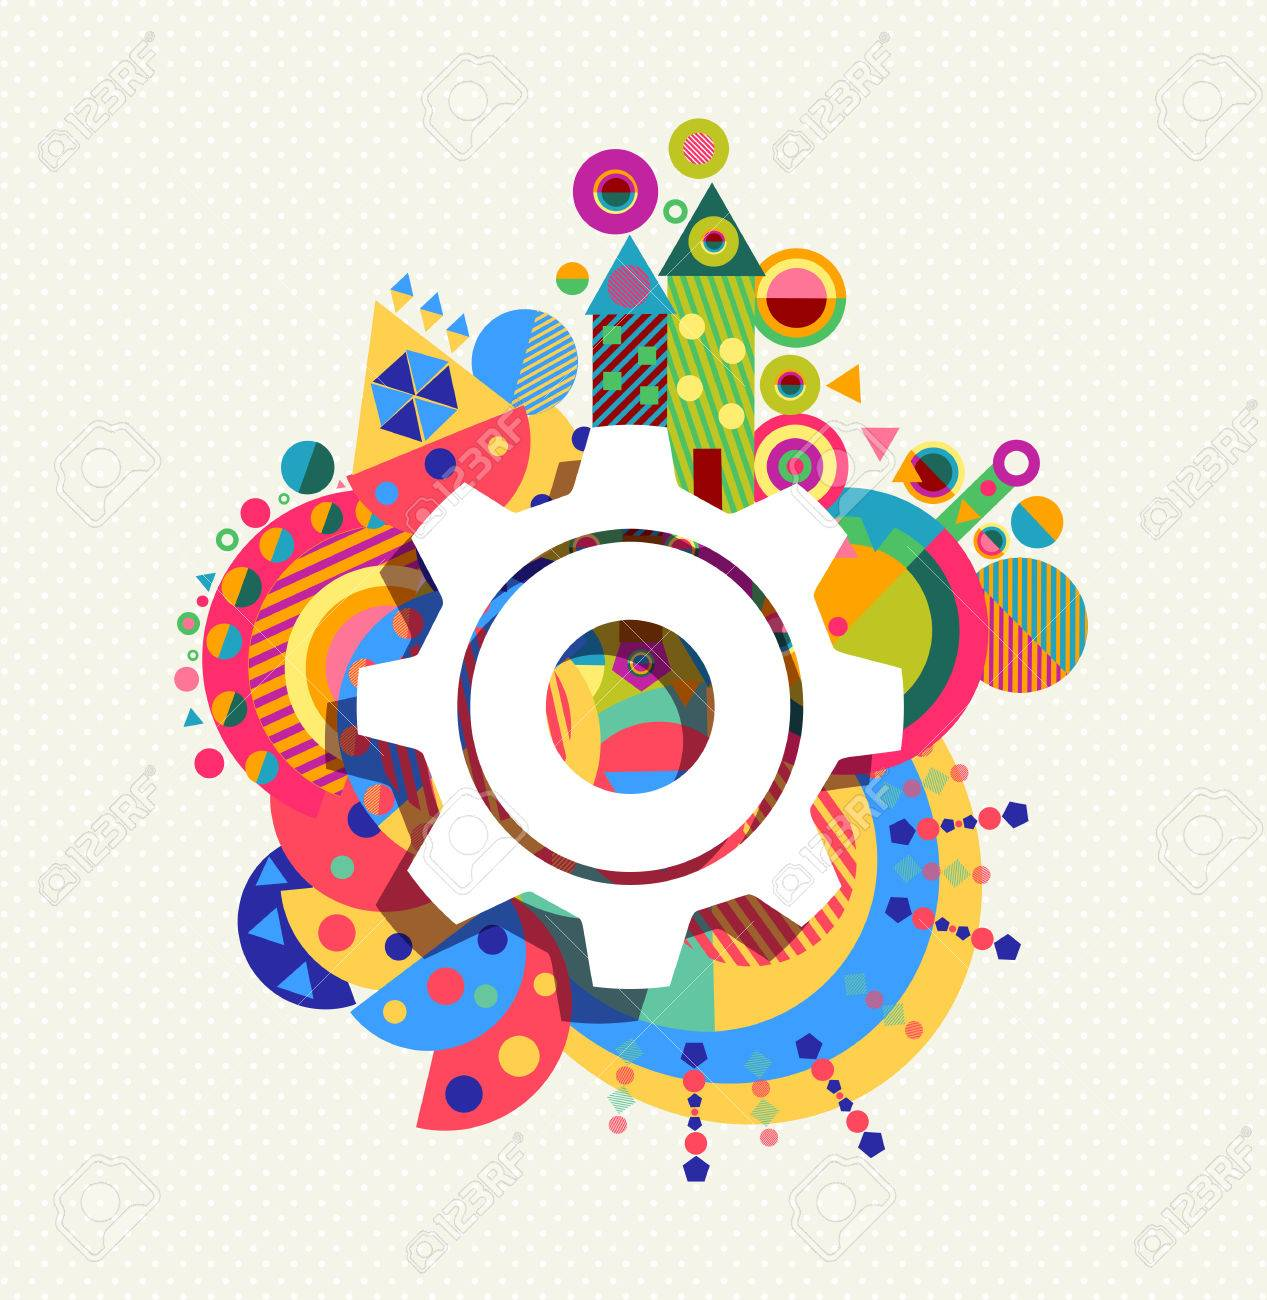 Gear wheel icon configuration concept design with colorful vibrant geometry shapes background. EPS10 vector. - 51161924